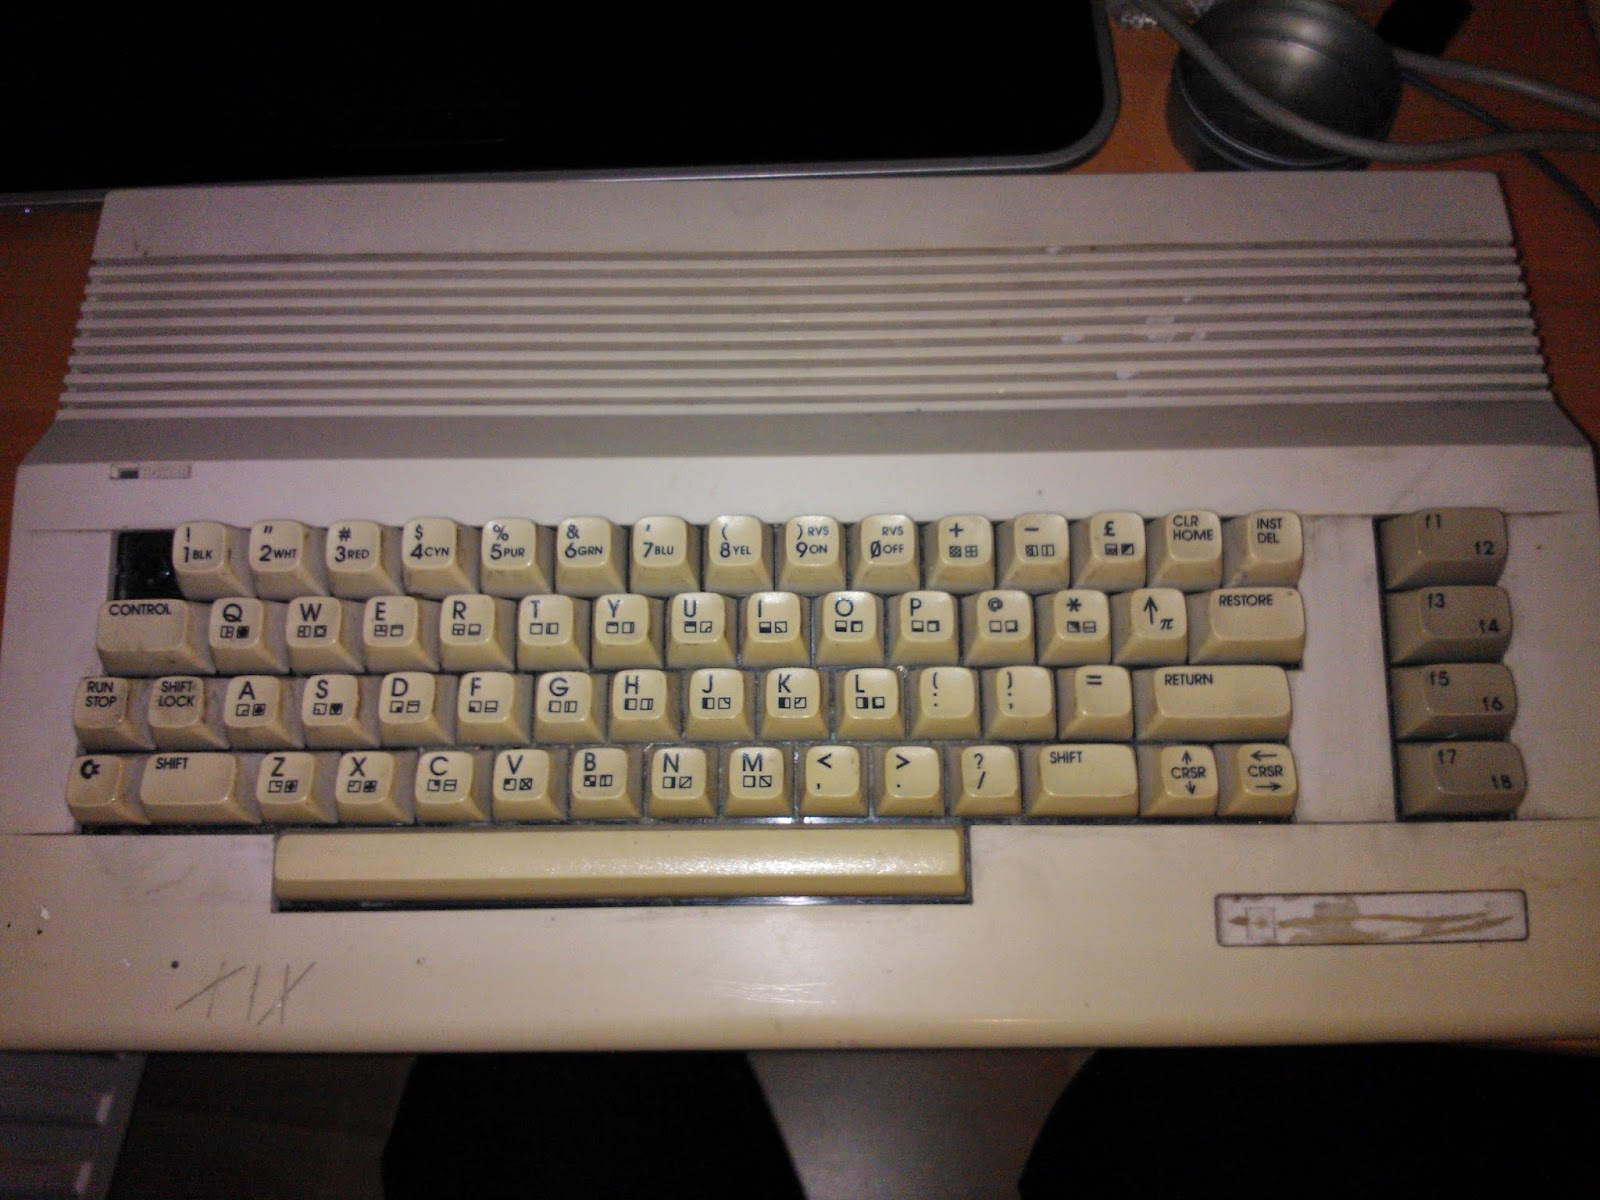 Cye's blog: How I rescued a Commodore 128